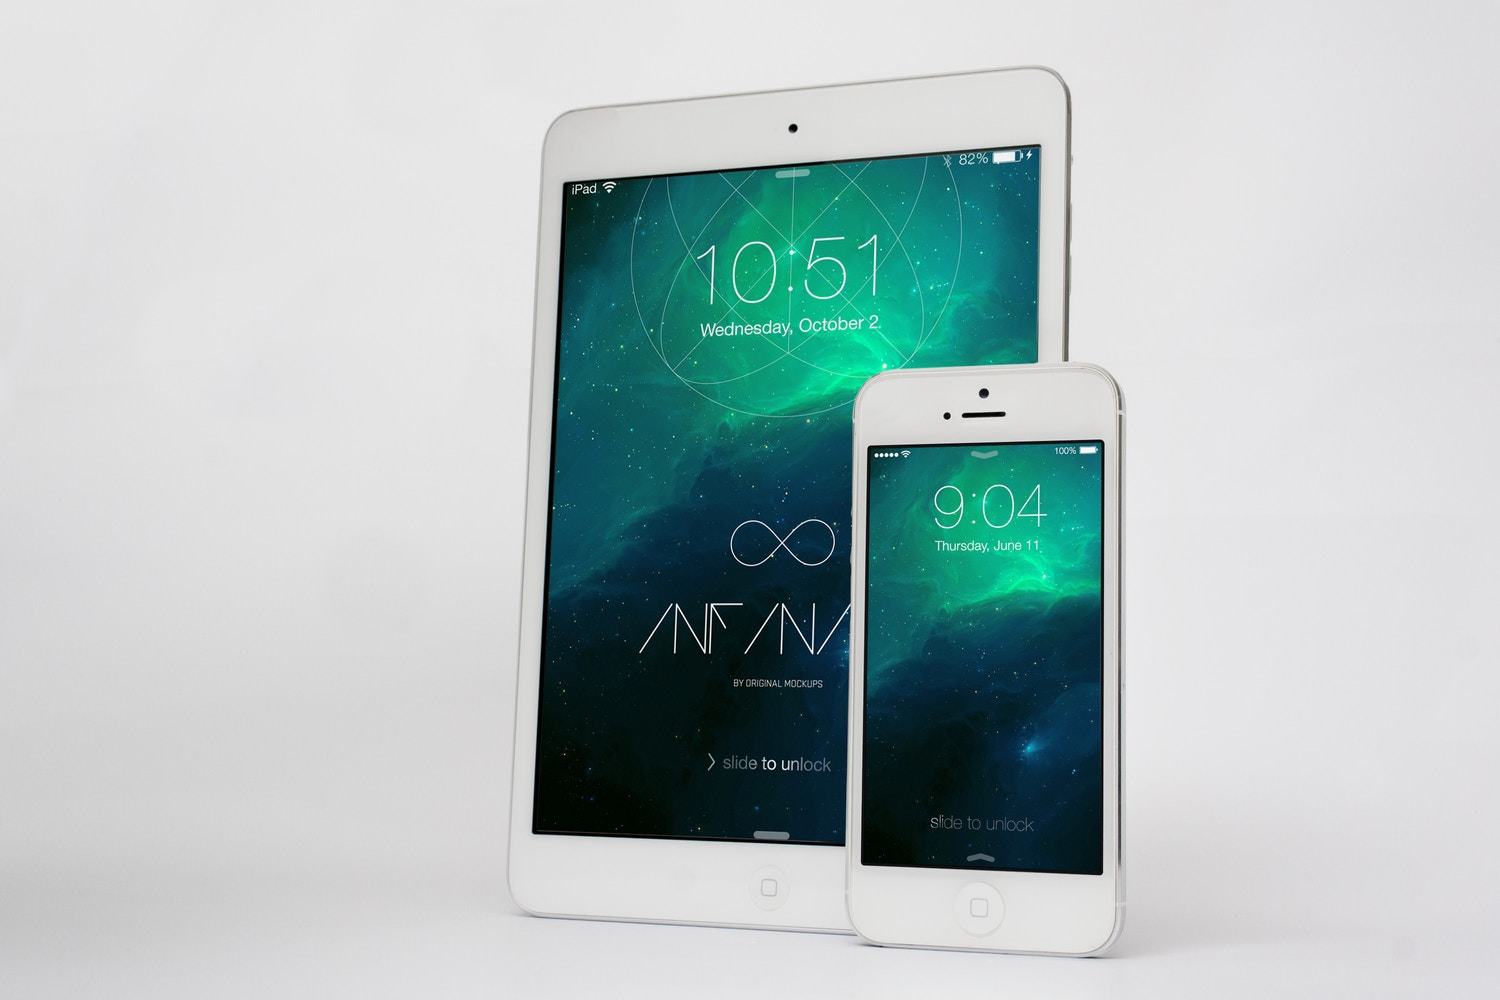 iPhone & iPad Mockup 2 by Original Mockups on Original Mockups